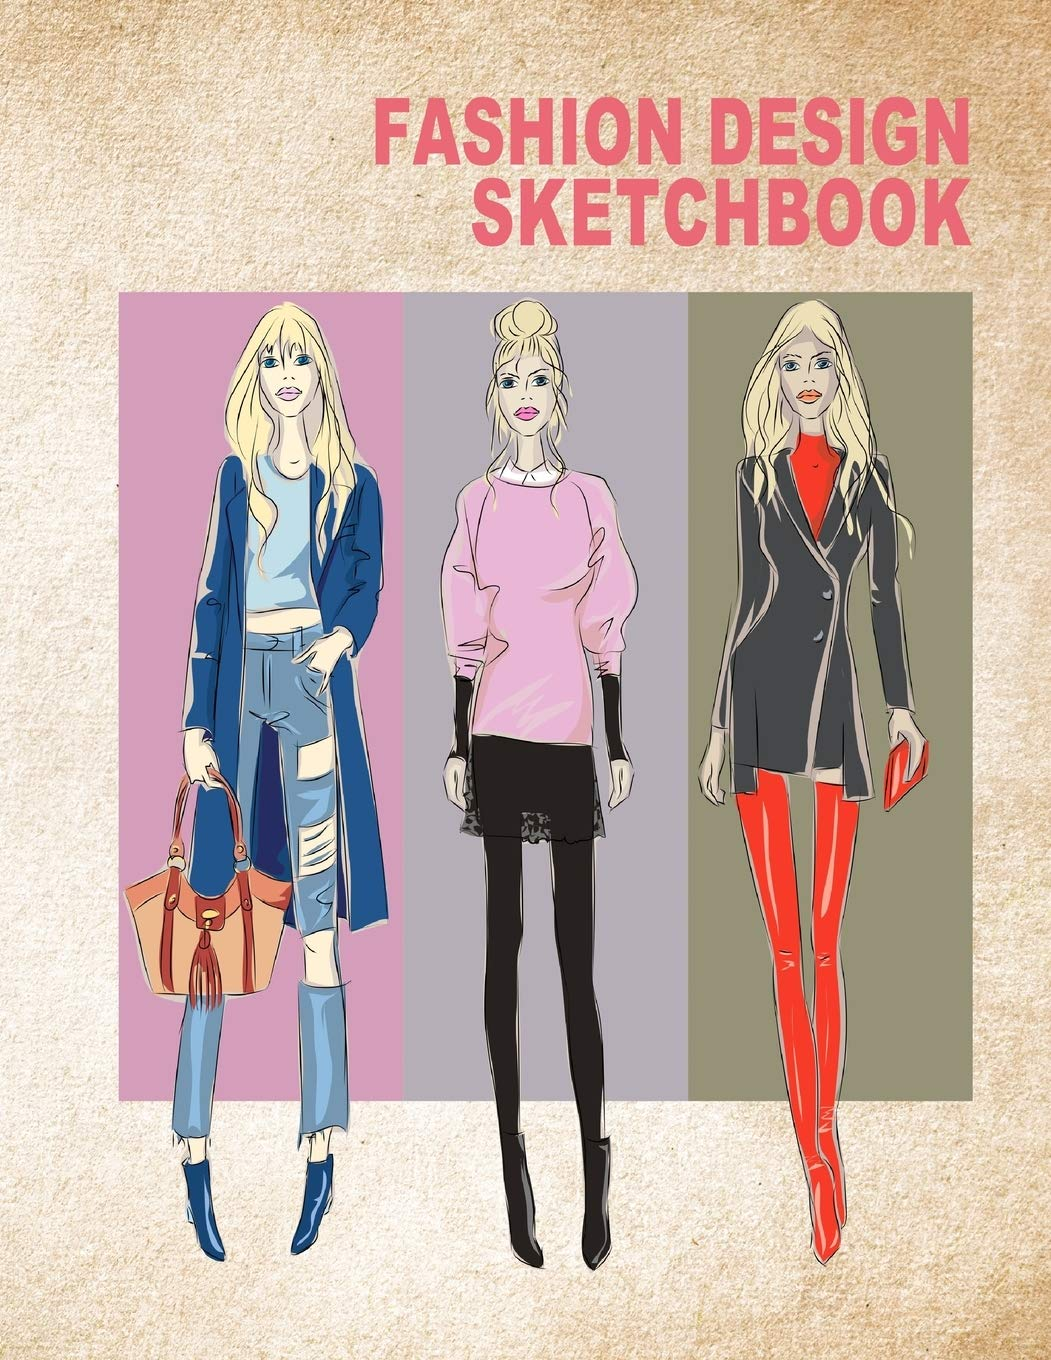 Fashion Design Sketchbook Women Figure Sketch Different Posed Template Will Easily Create Your Fashion Styles Fashion Sketch Ahrendts Angel 9781983009211 Amazon Com Books